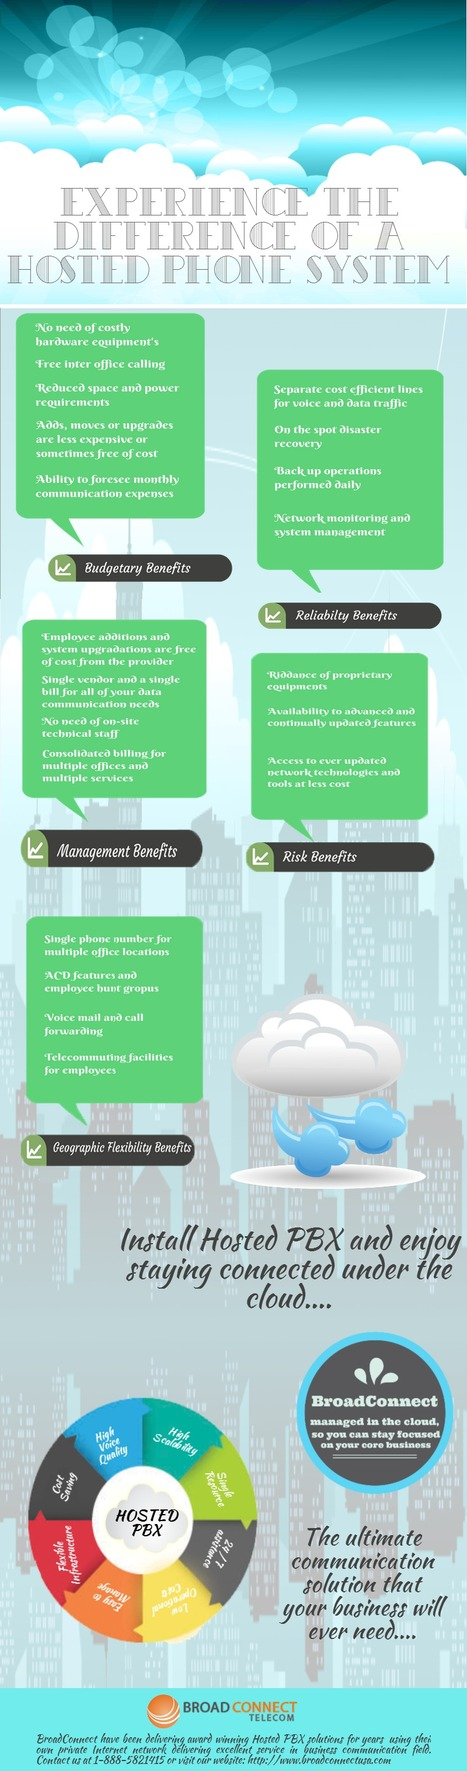 Blog - Broadconnect Telecom USA: Infographics : Experience the Difference of a Hosted Phone System   Cloud PBX   Scoop.it